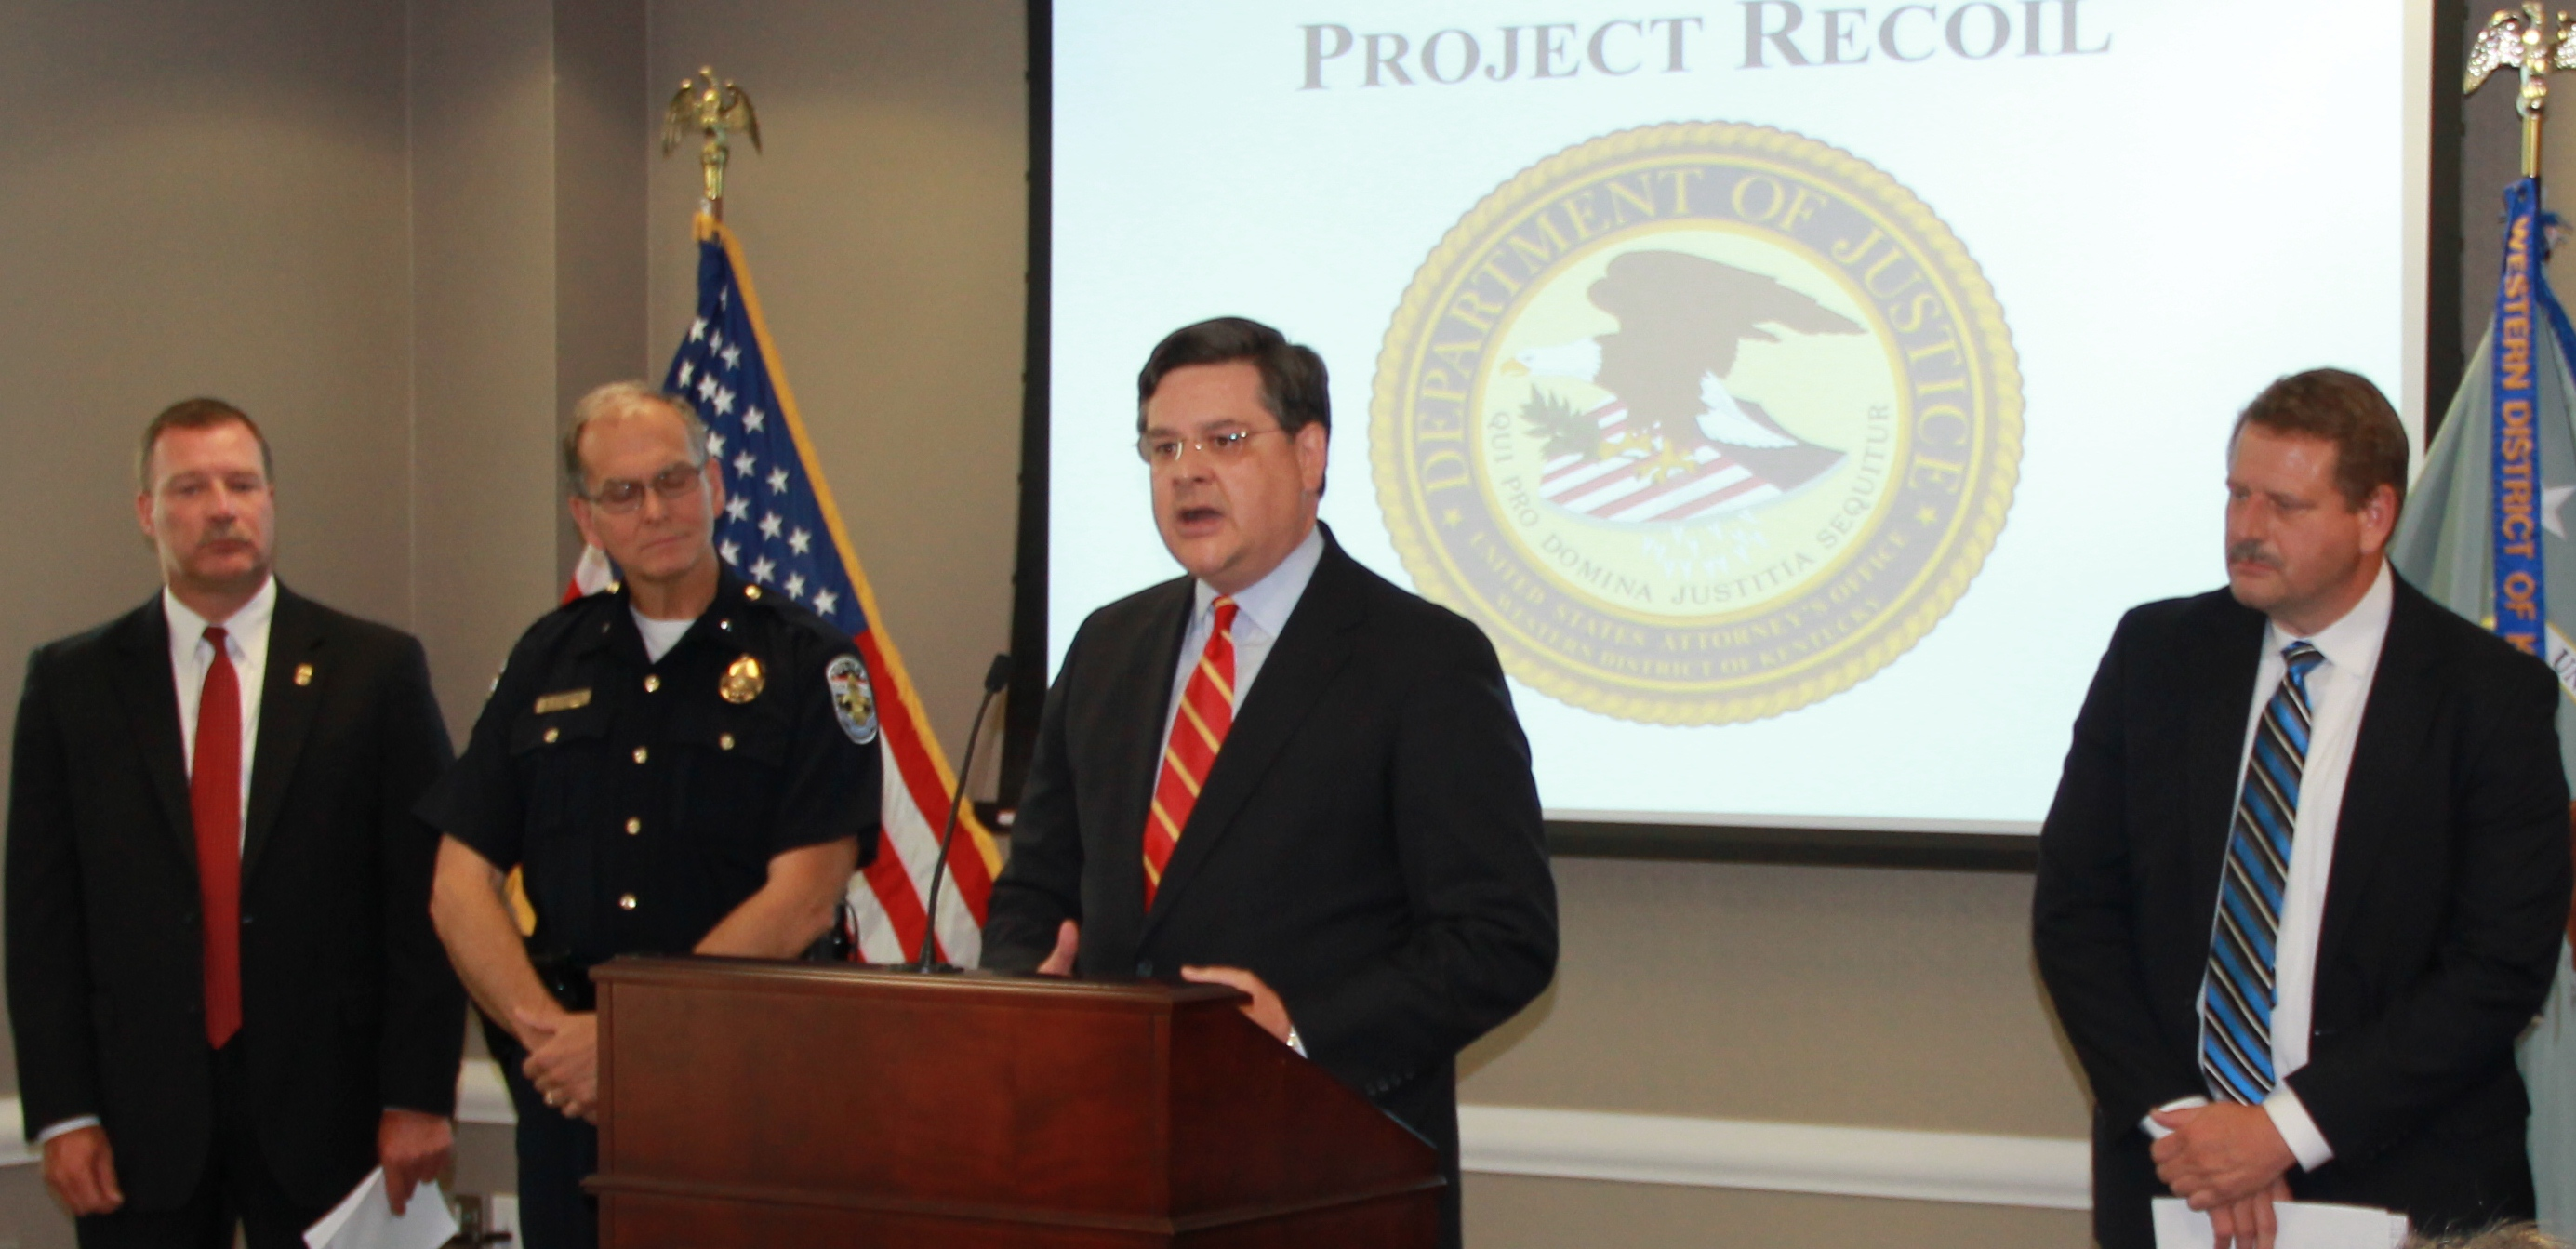 US Attorney David J. Hale - Project Recoil